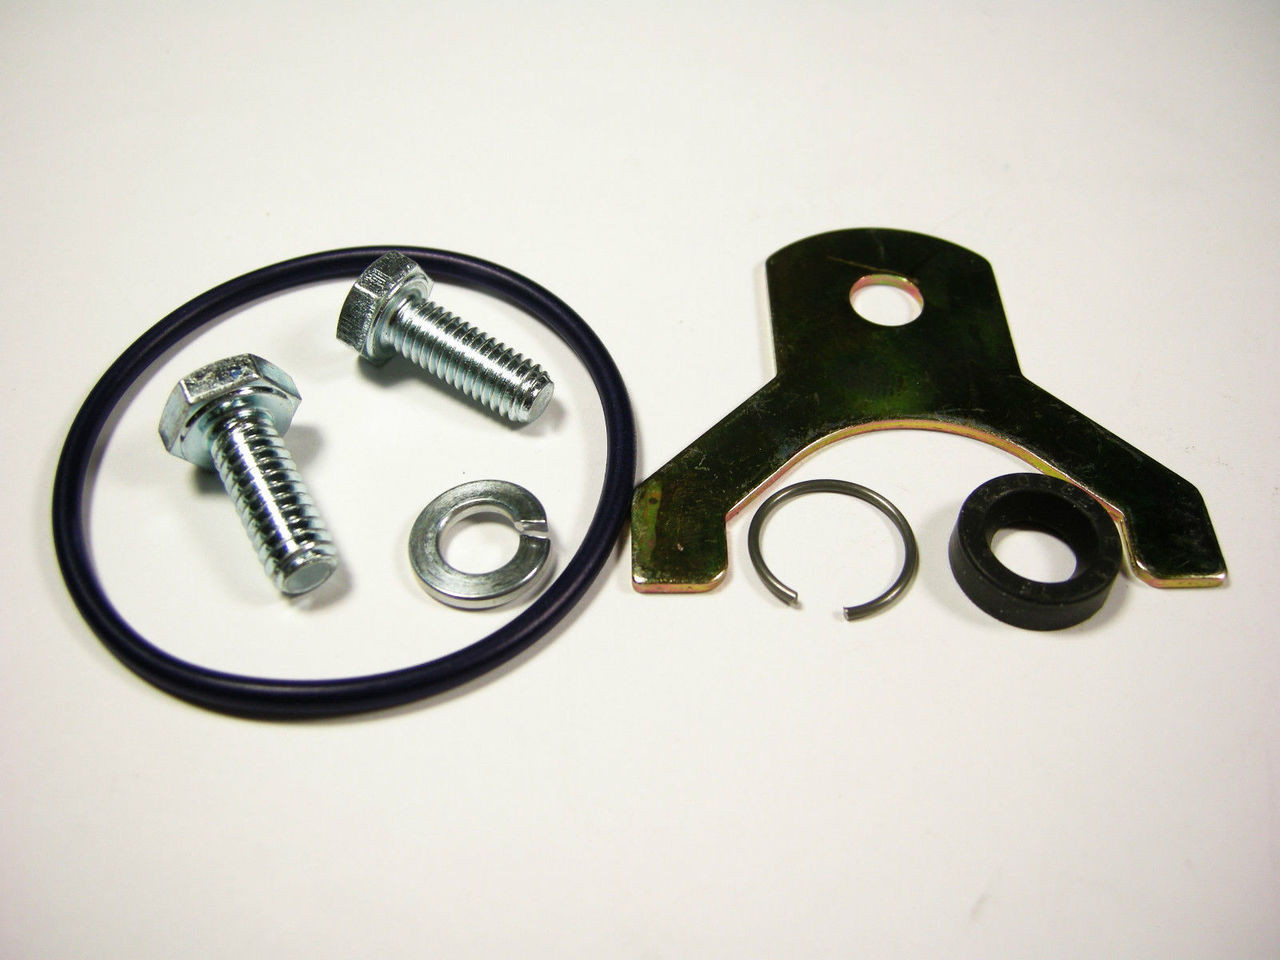 700R4 COMPLETE Speedo Gear Housing LEAK STOP SEAL KIT Transmission Speedometer